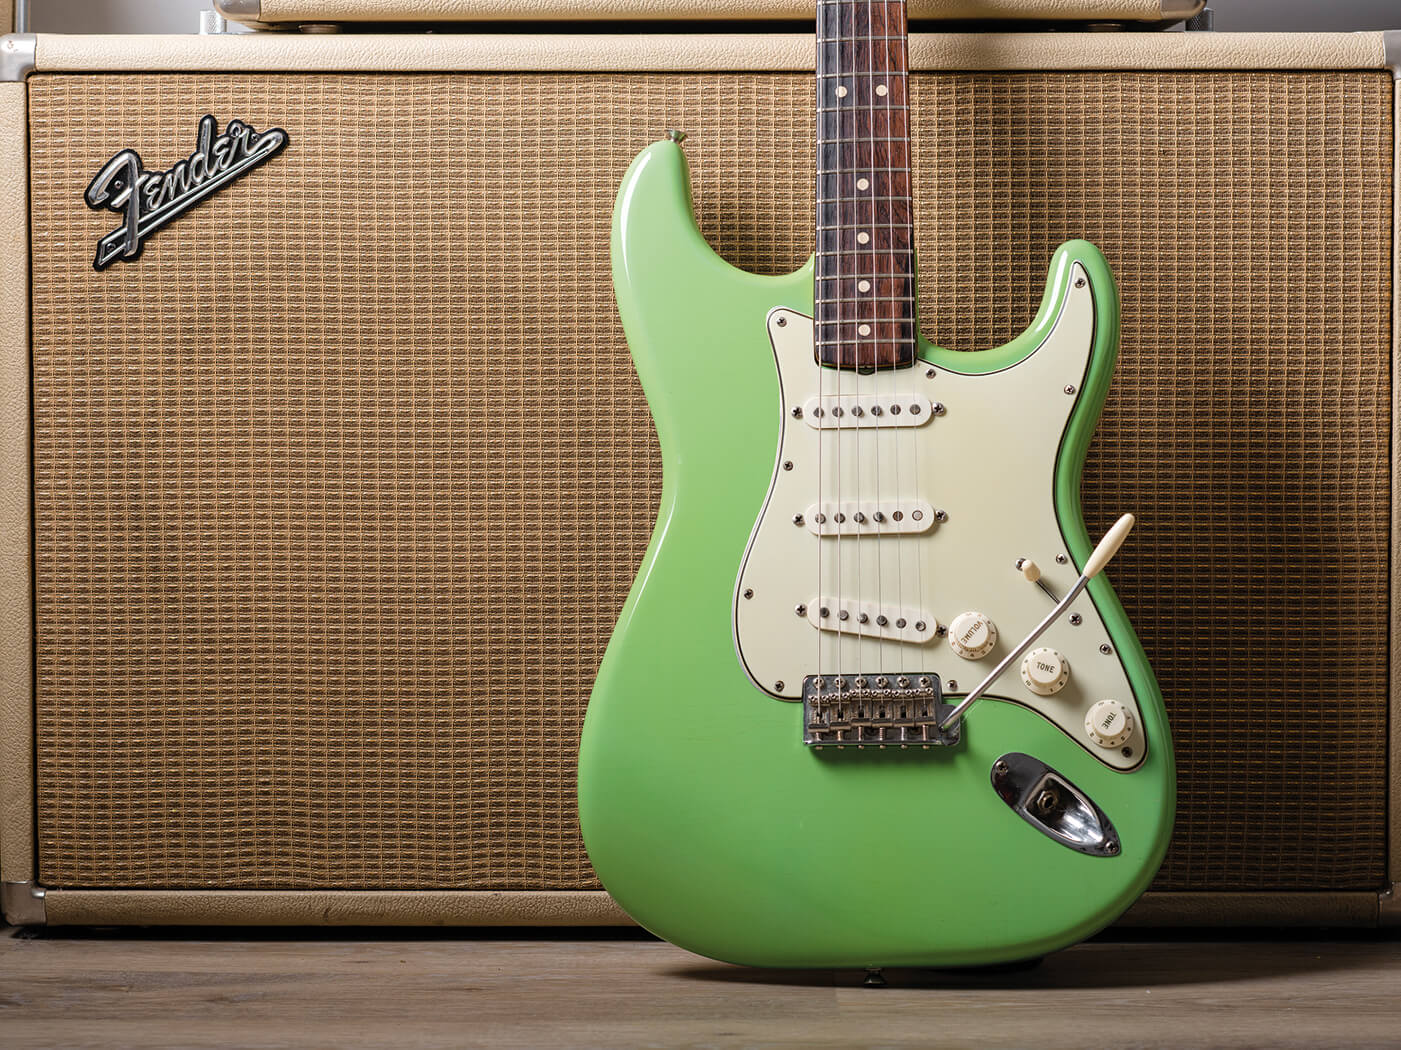 Fender Pre-CBS Surf Green Strat pictured with amp close up